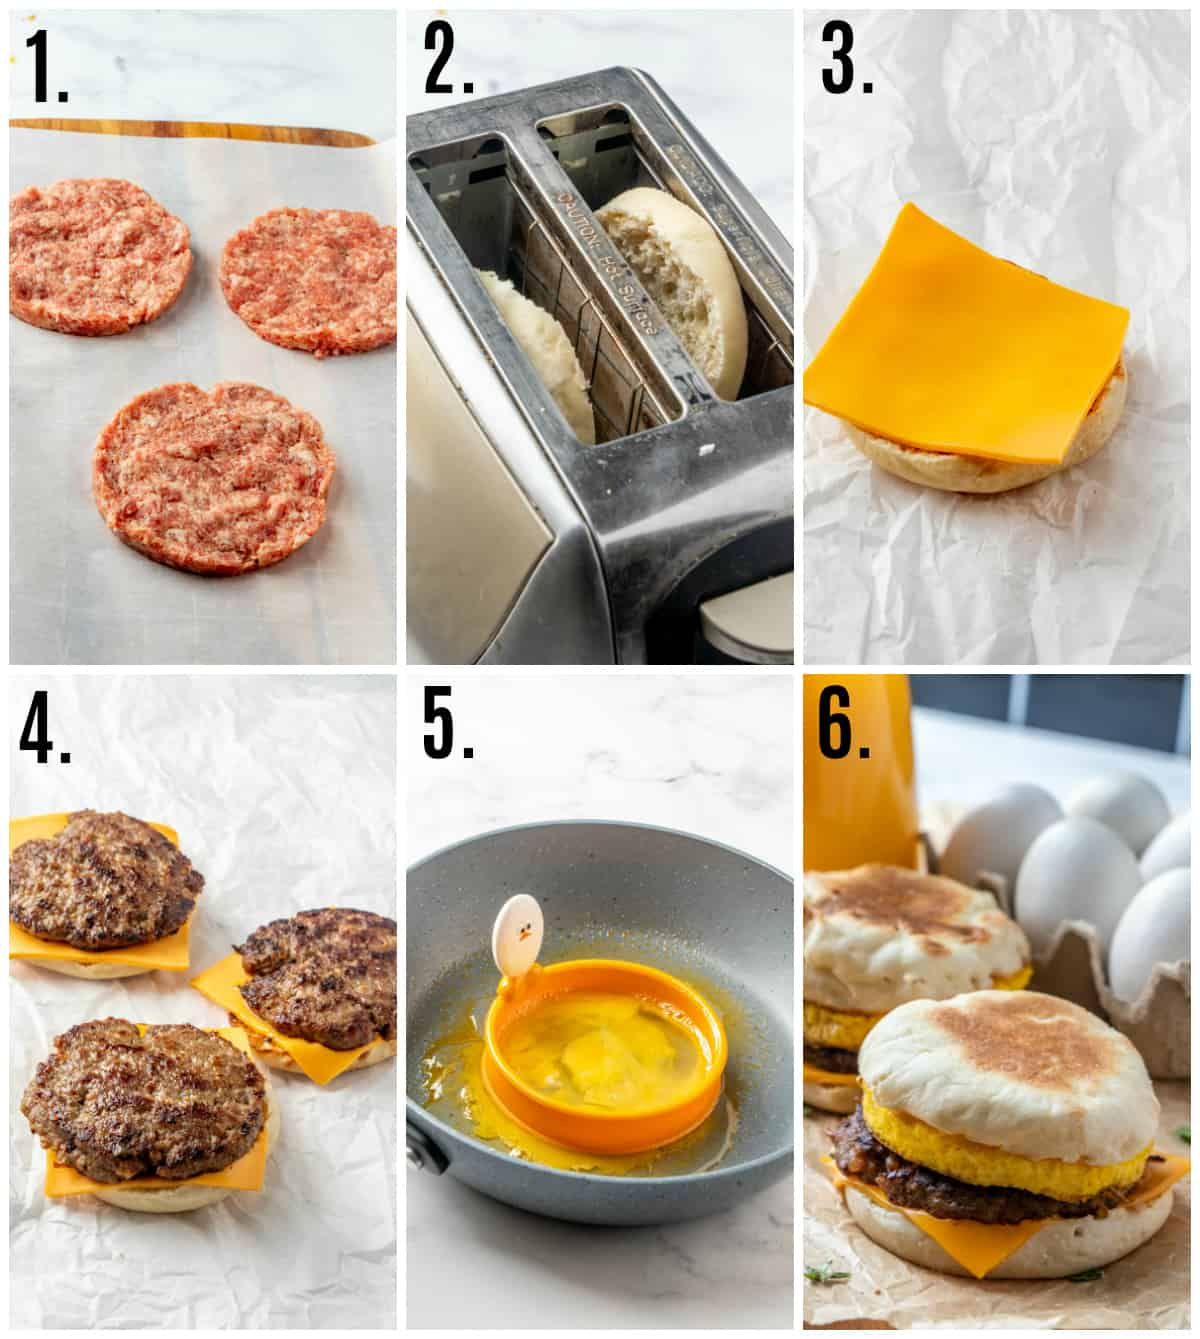 Step by step photos on how to make Sausage Egg McMuffins